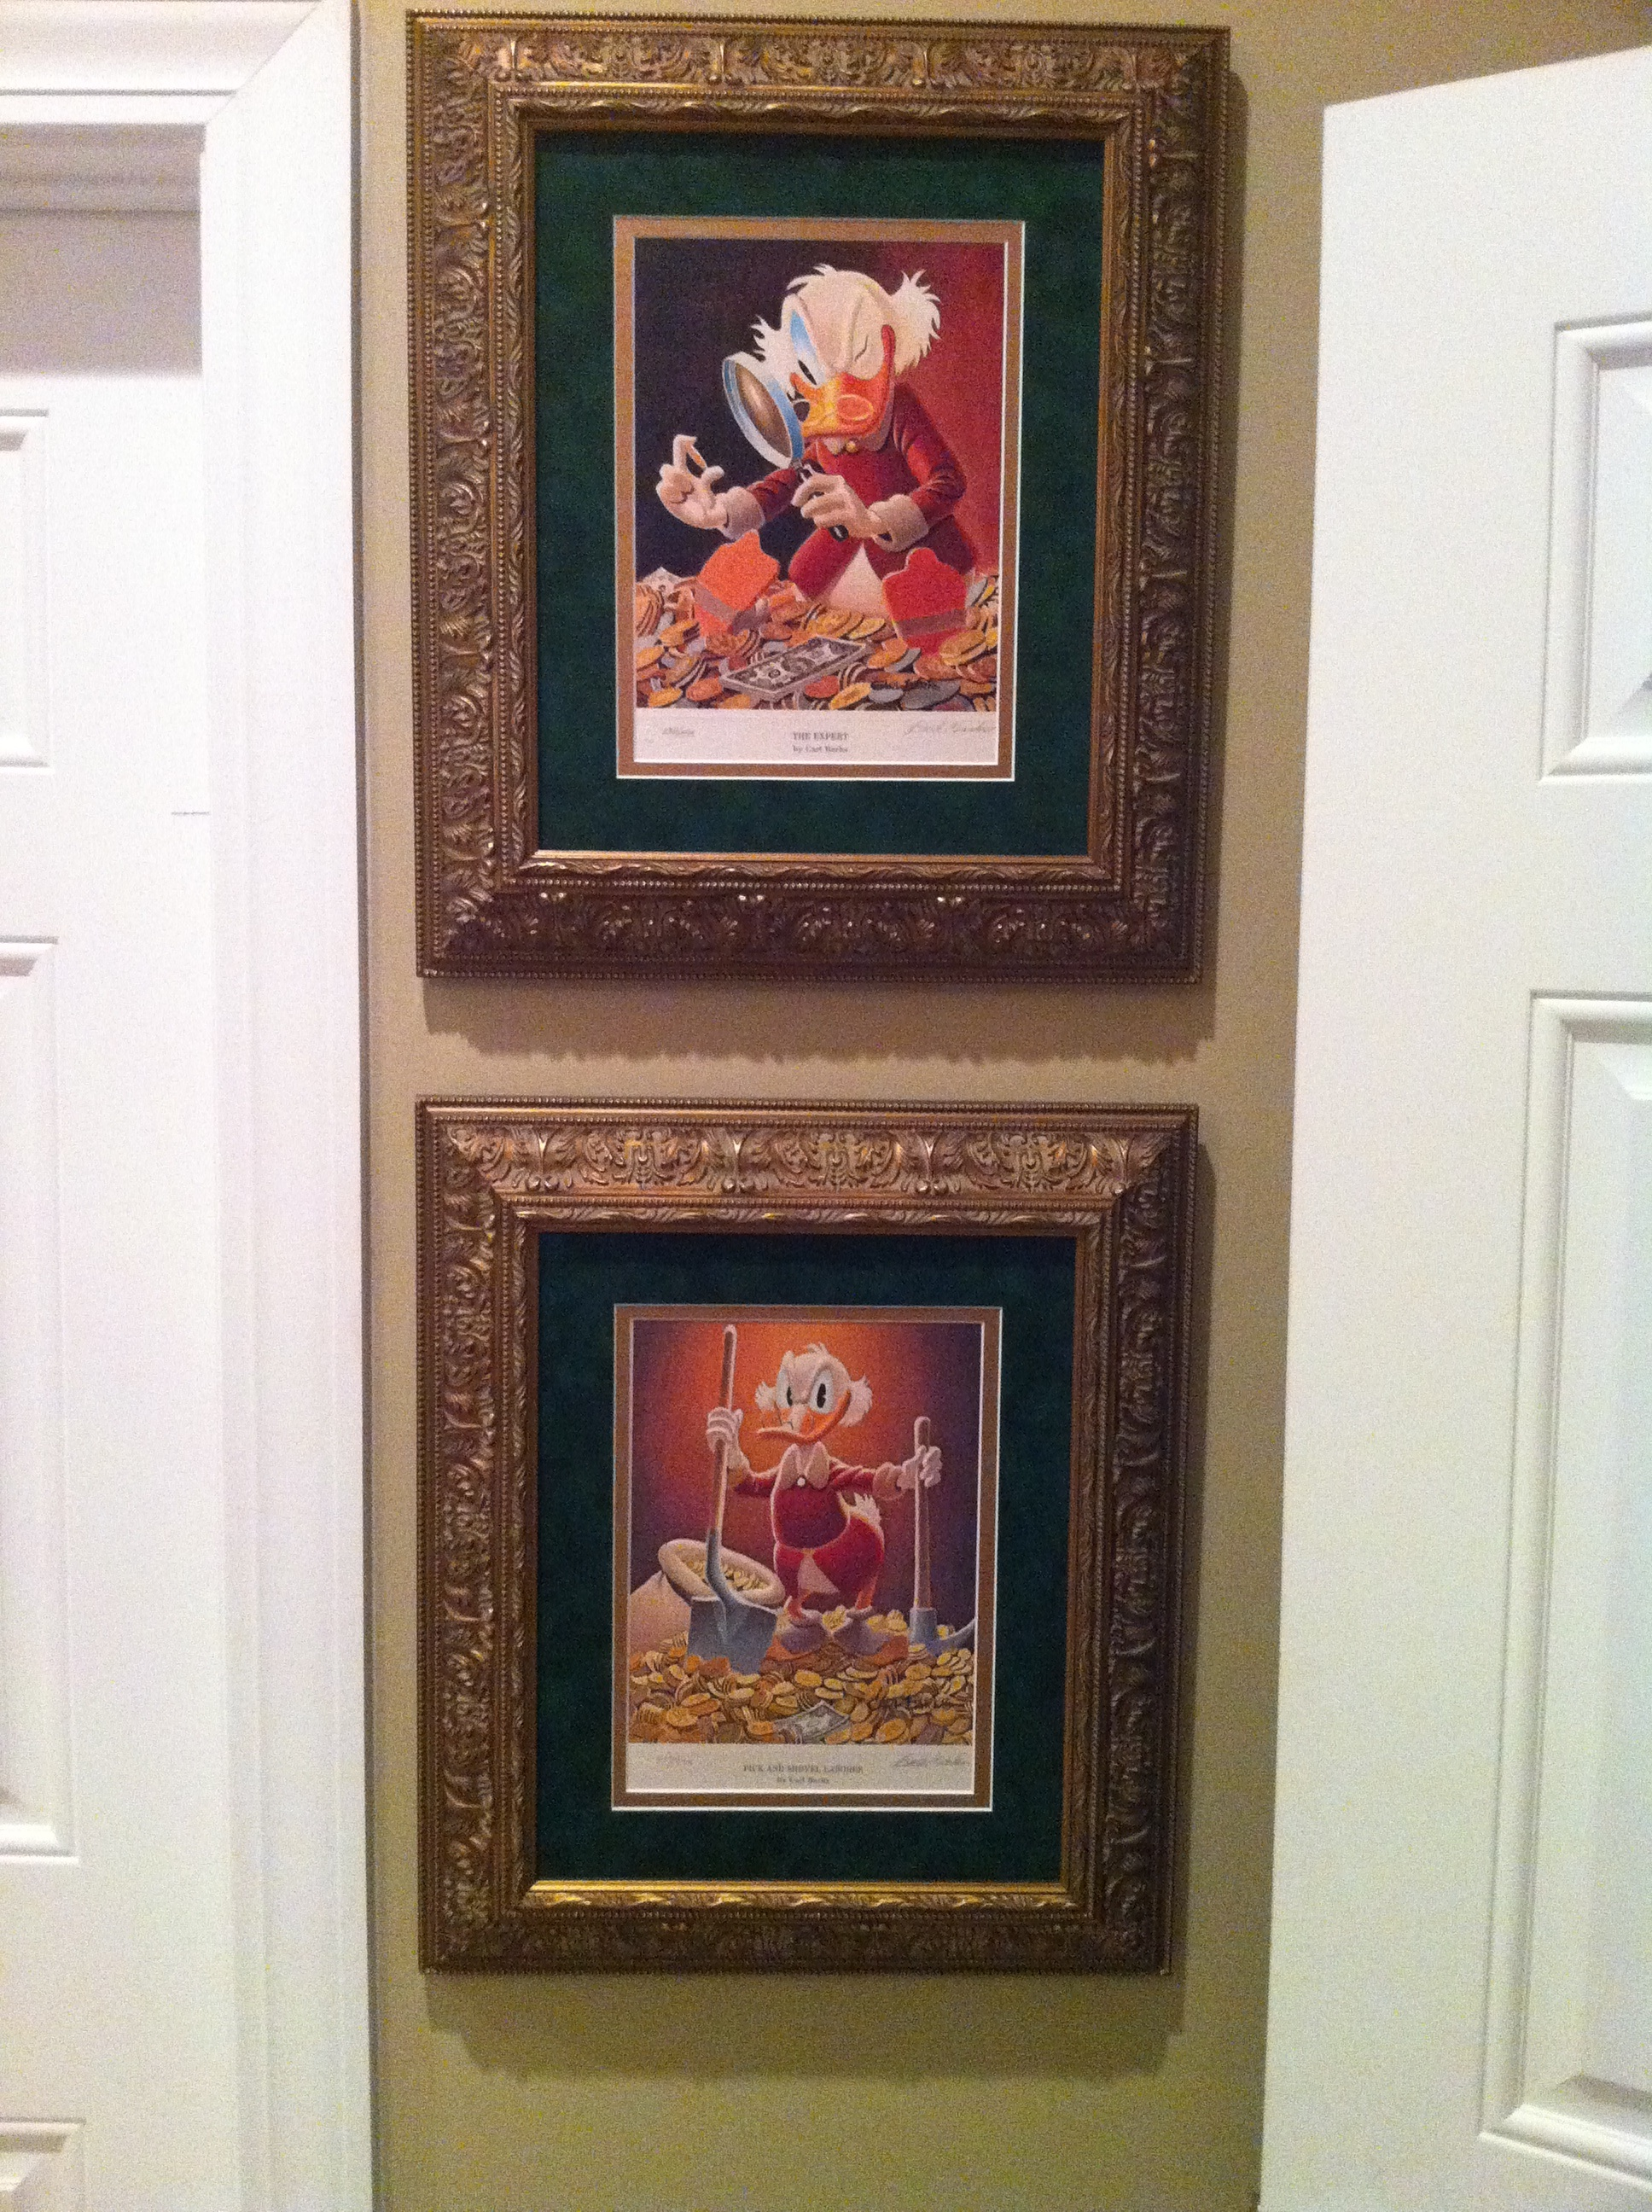 Carl Barks Art for Office of Scrooge McDuck